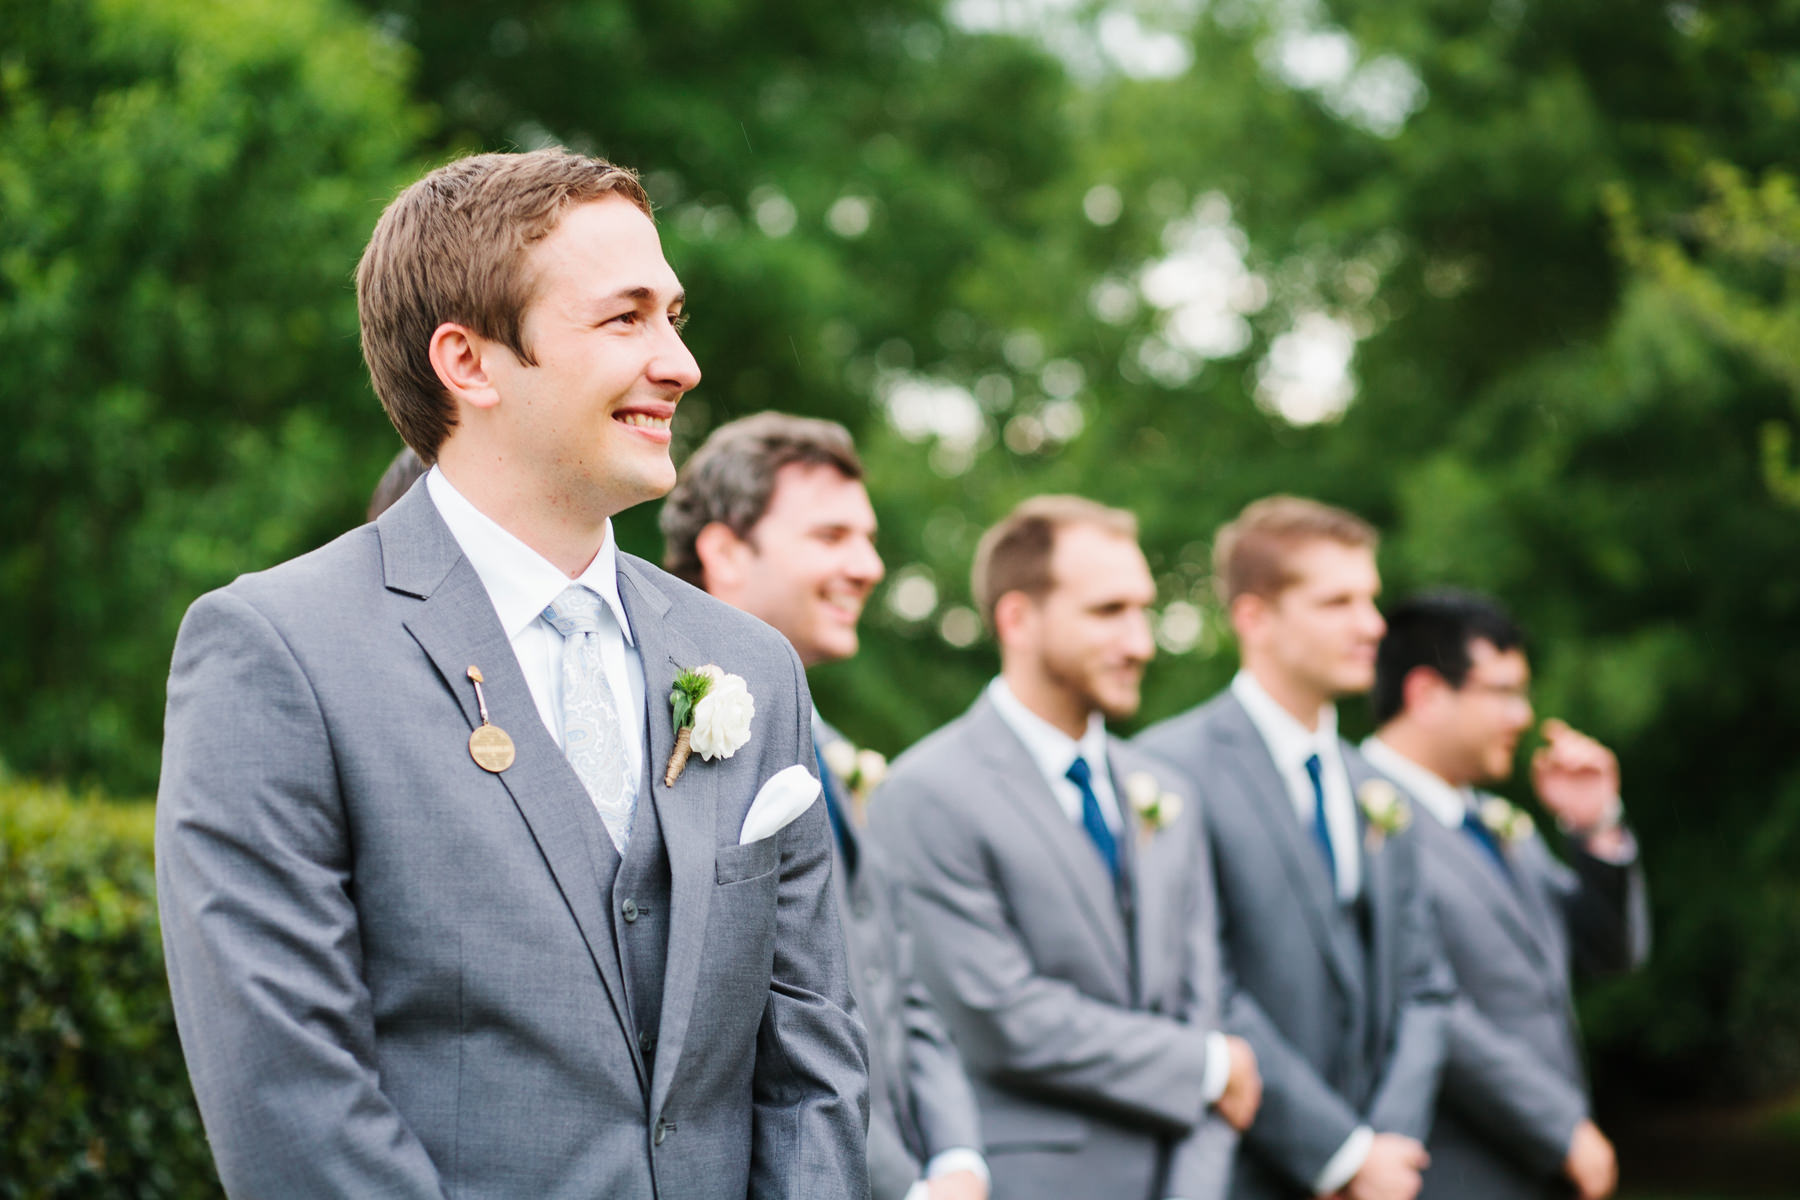 Groom Seeing Bride Walk Down Aisle